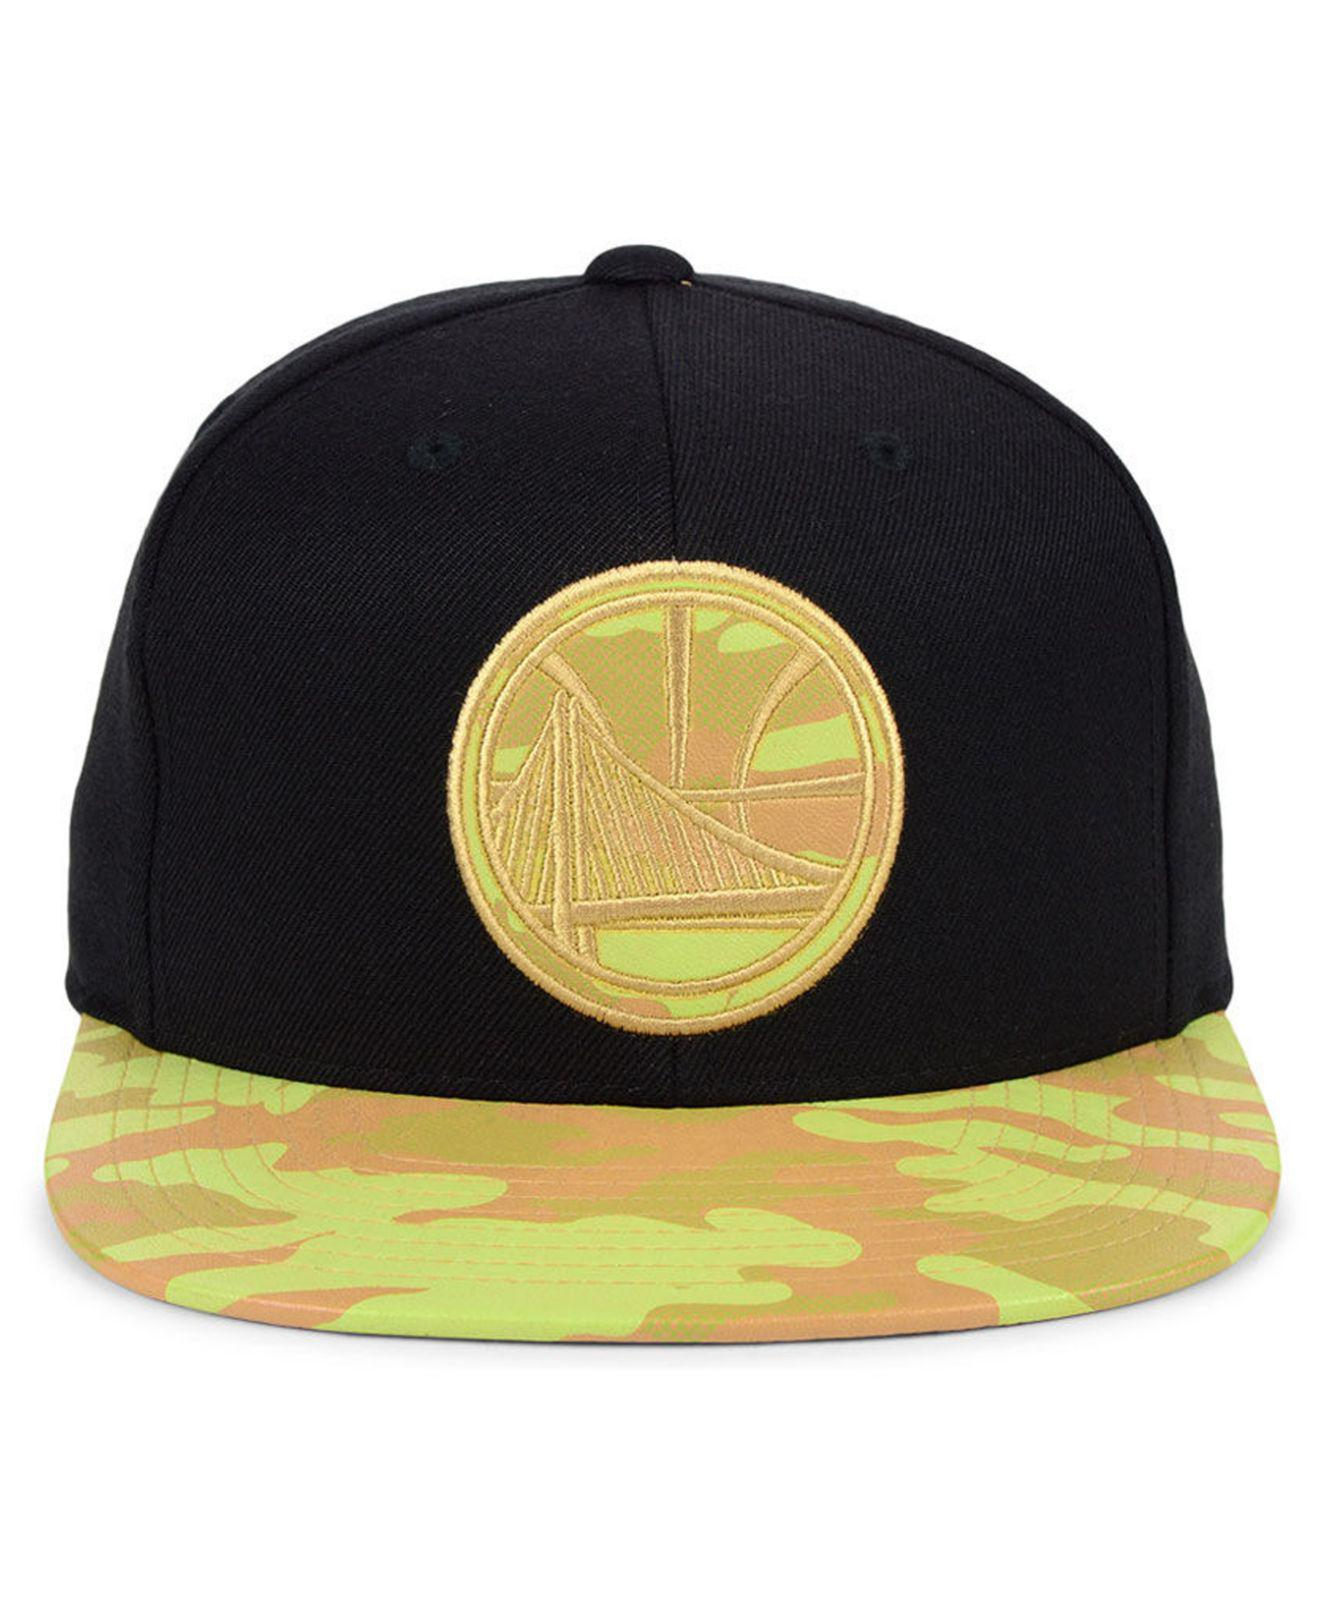 a9124611a37c07 ... where can i buy lyst mitchell ness golden state warriors natural camo  snapback cap in black